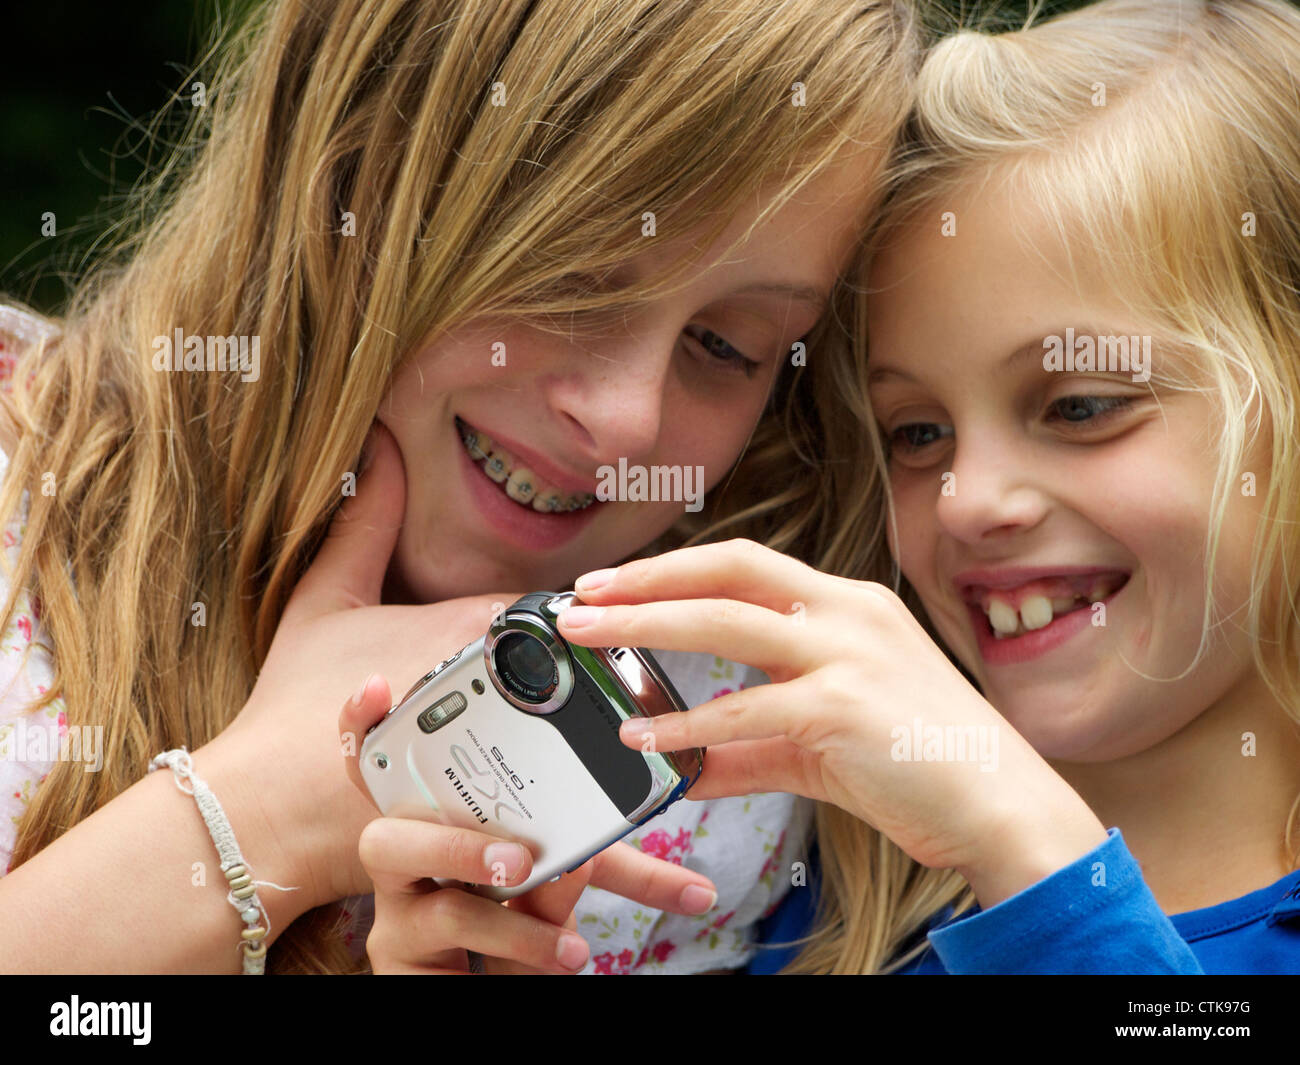 Two young girls sisters smiling while looking at pictures on their digital camera - Stock Image